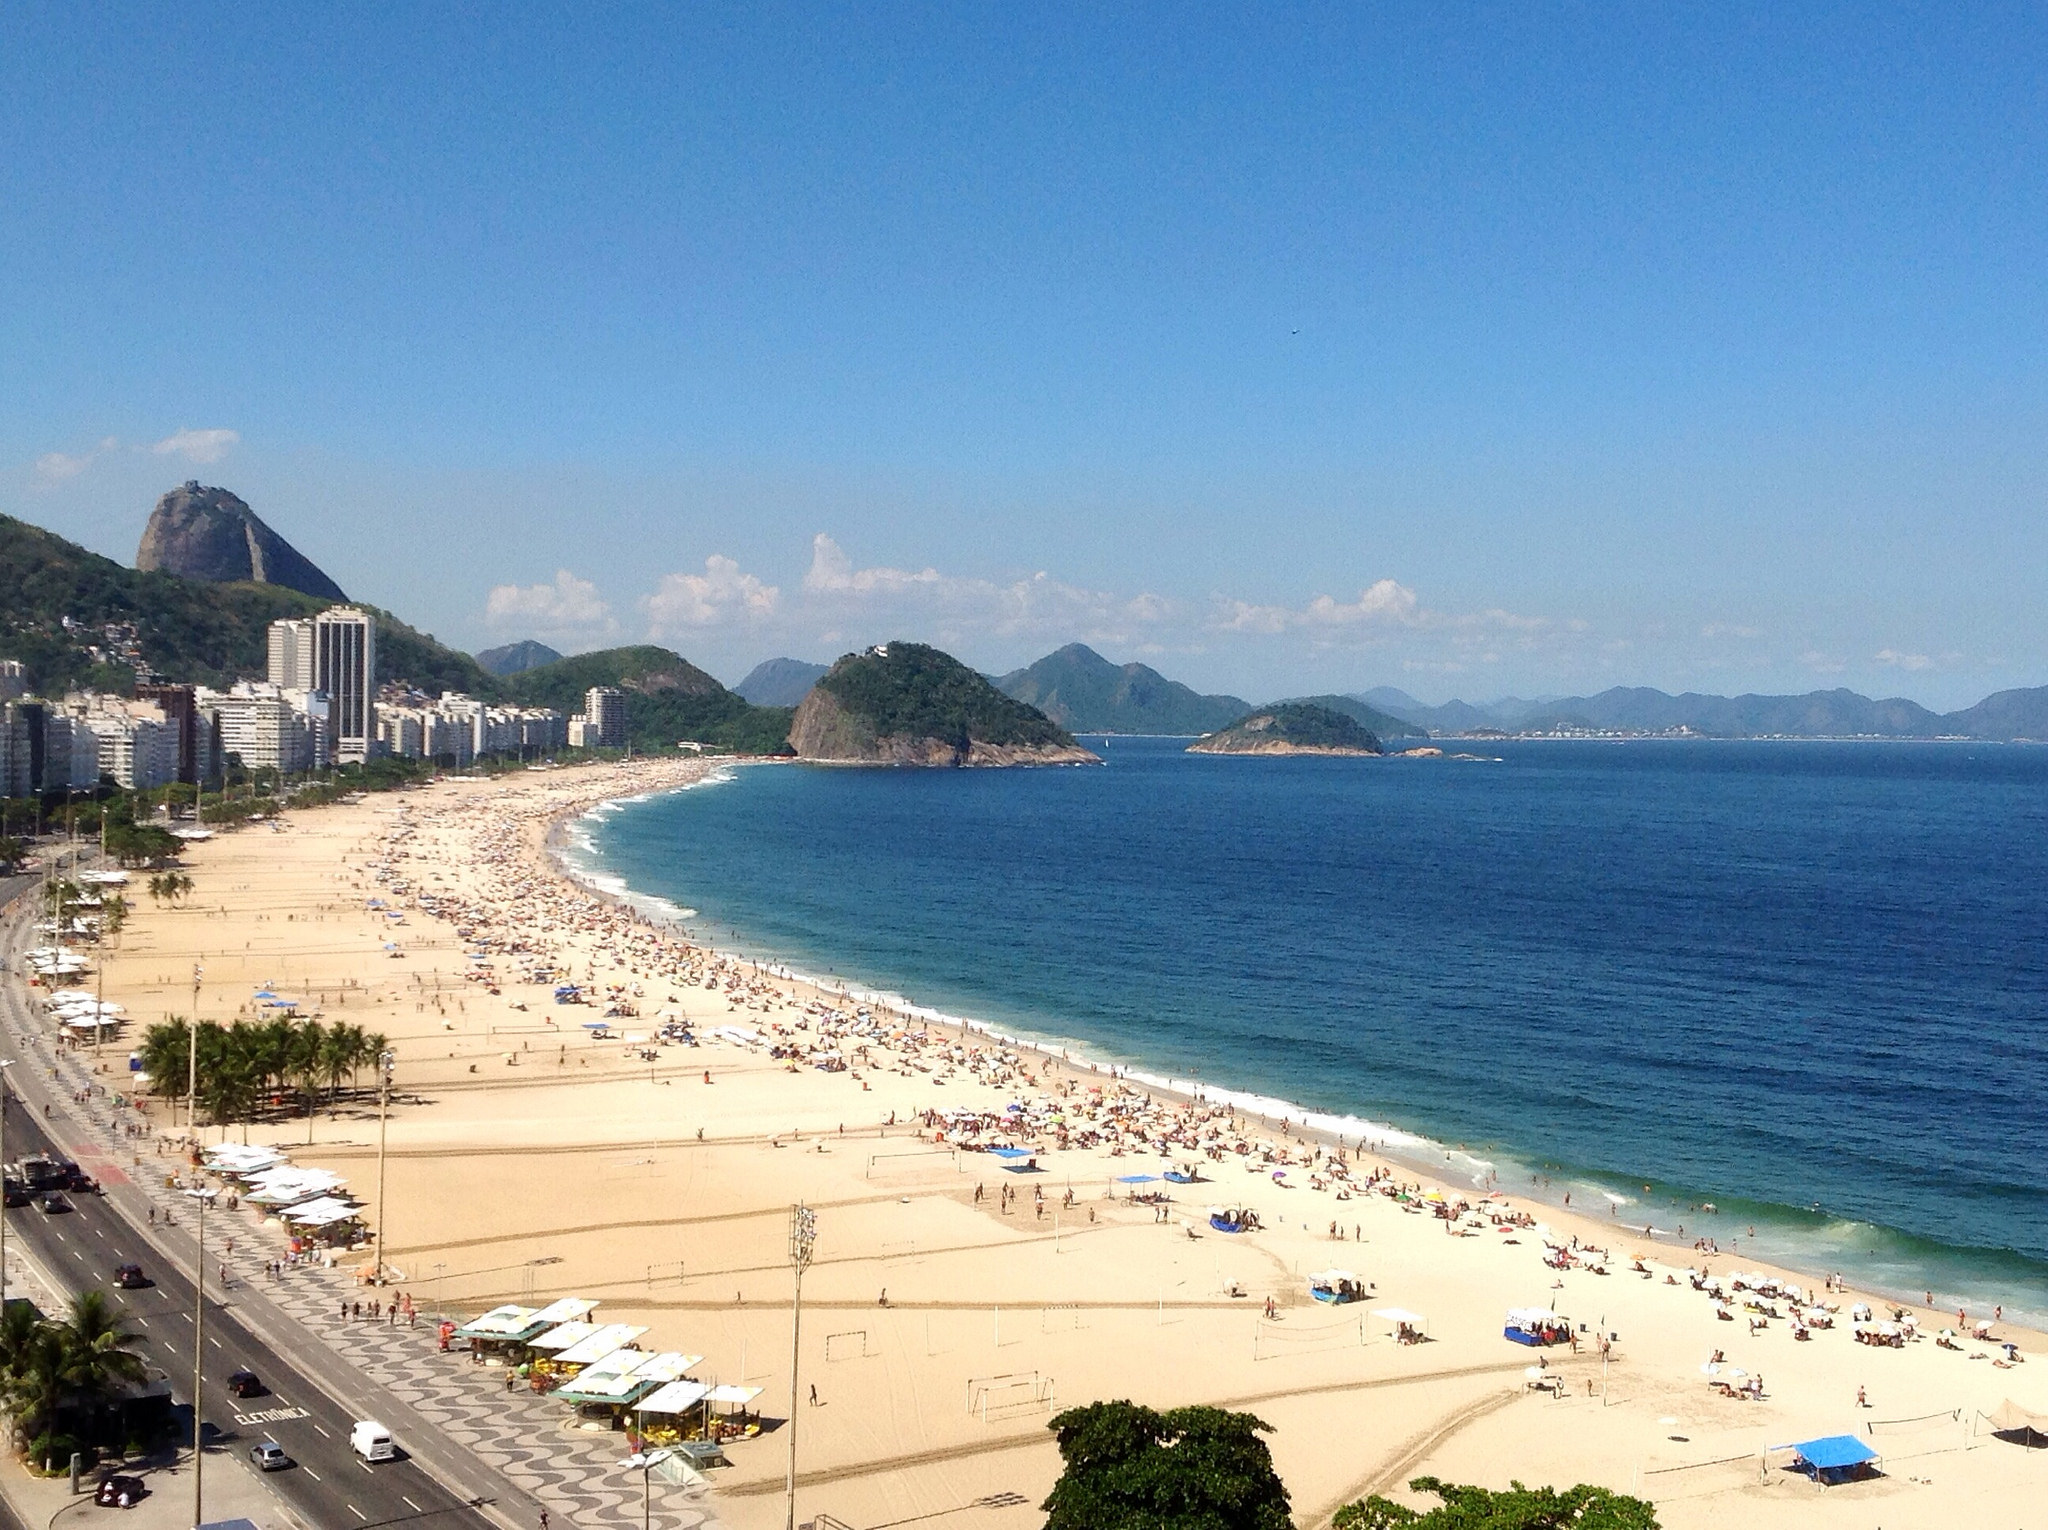 Beaches of Copacabana